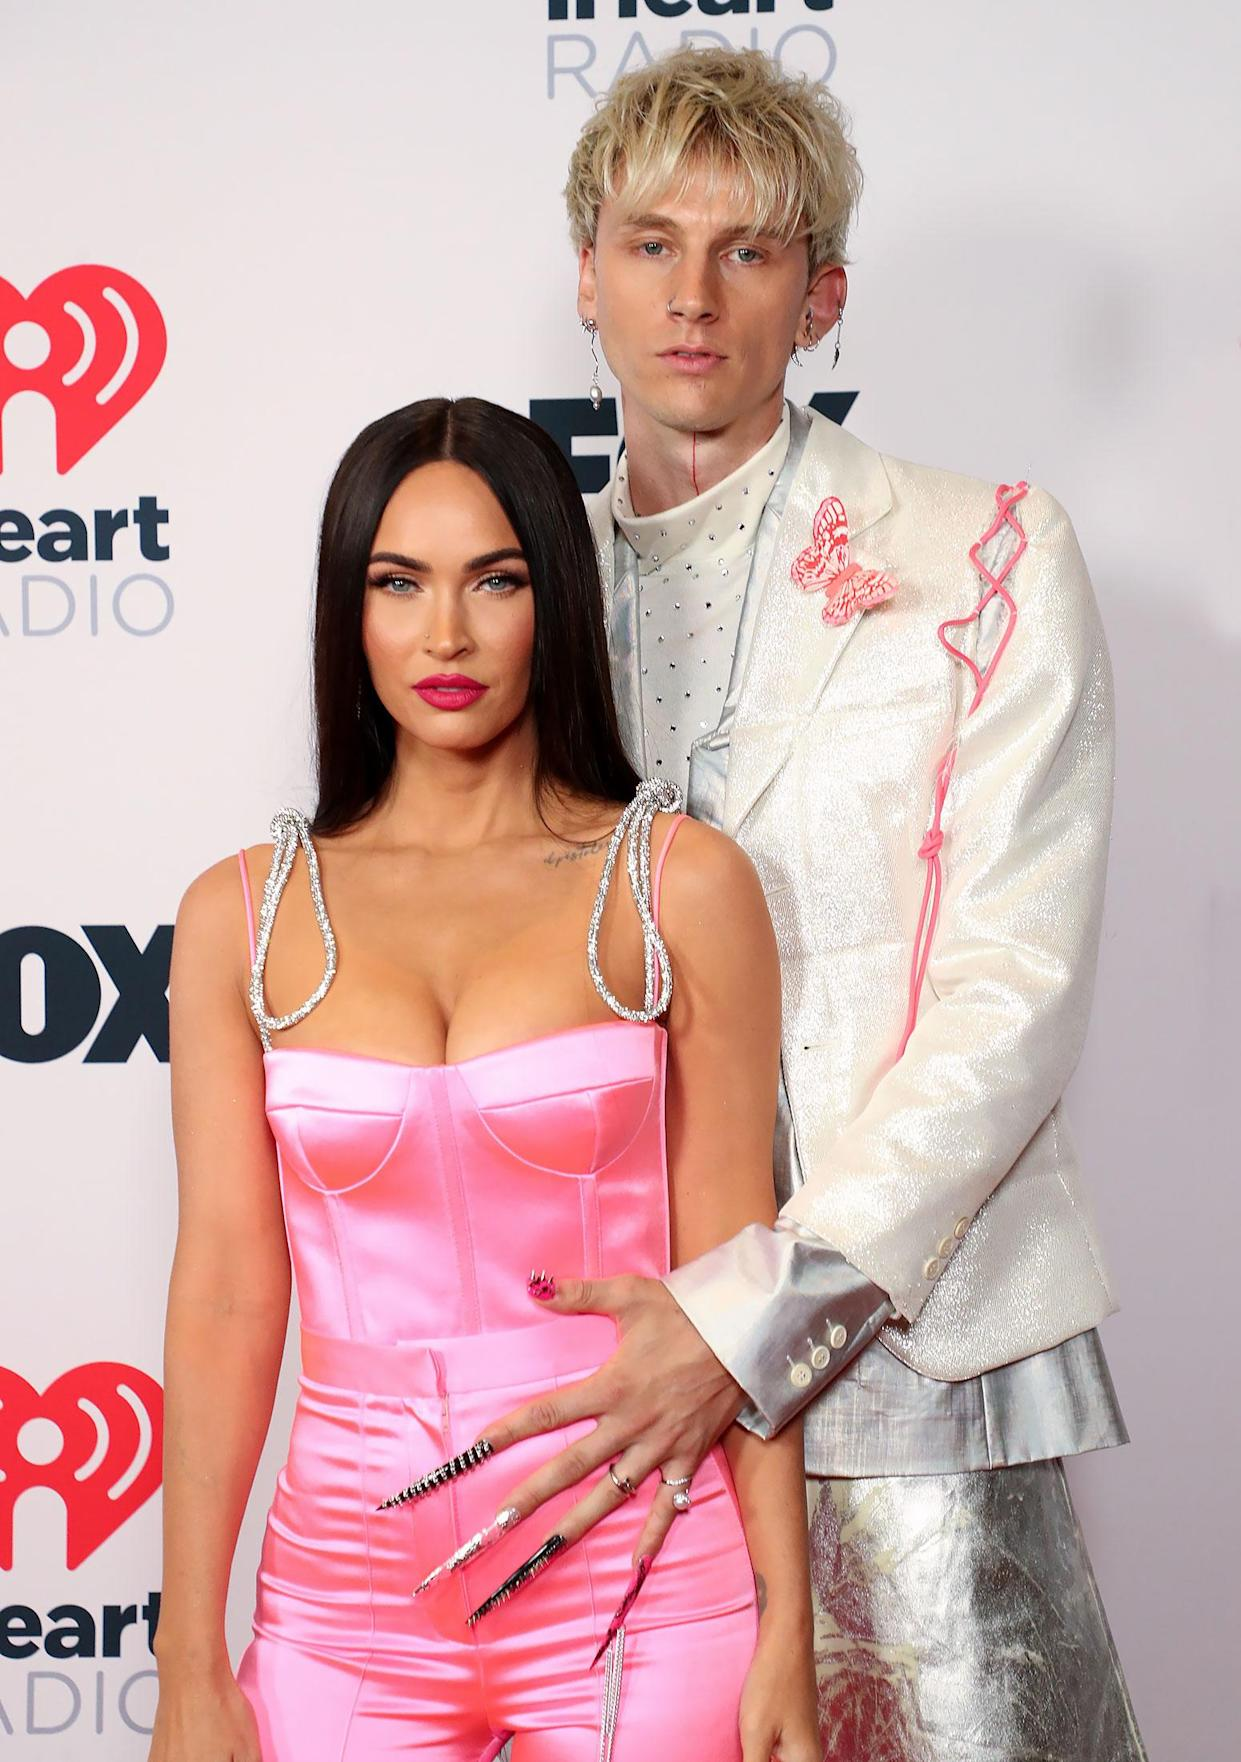 Machine Gun Kelly & # x002019;  s insanely long and studded acrylic nails have broken the internet